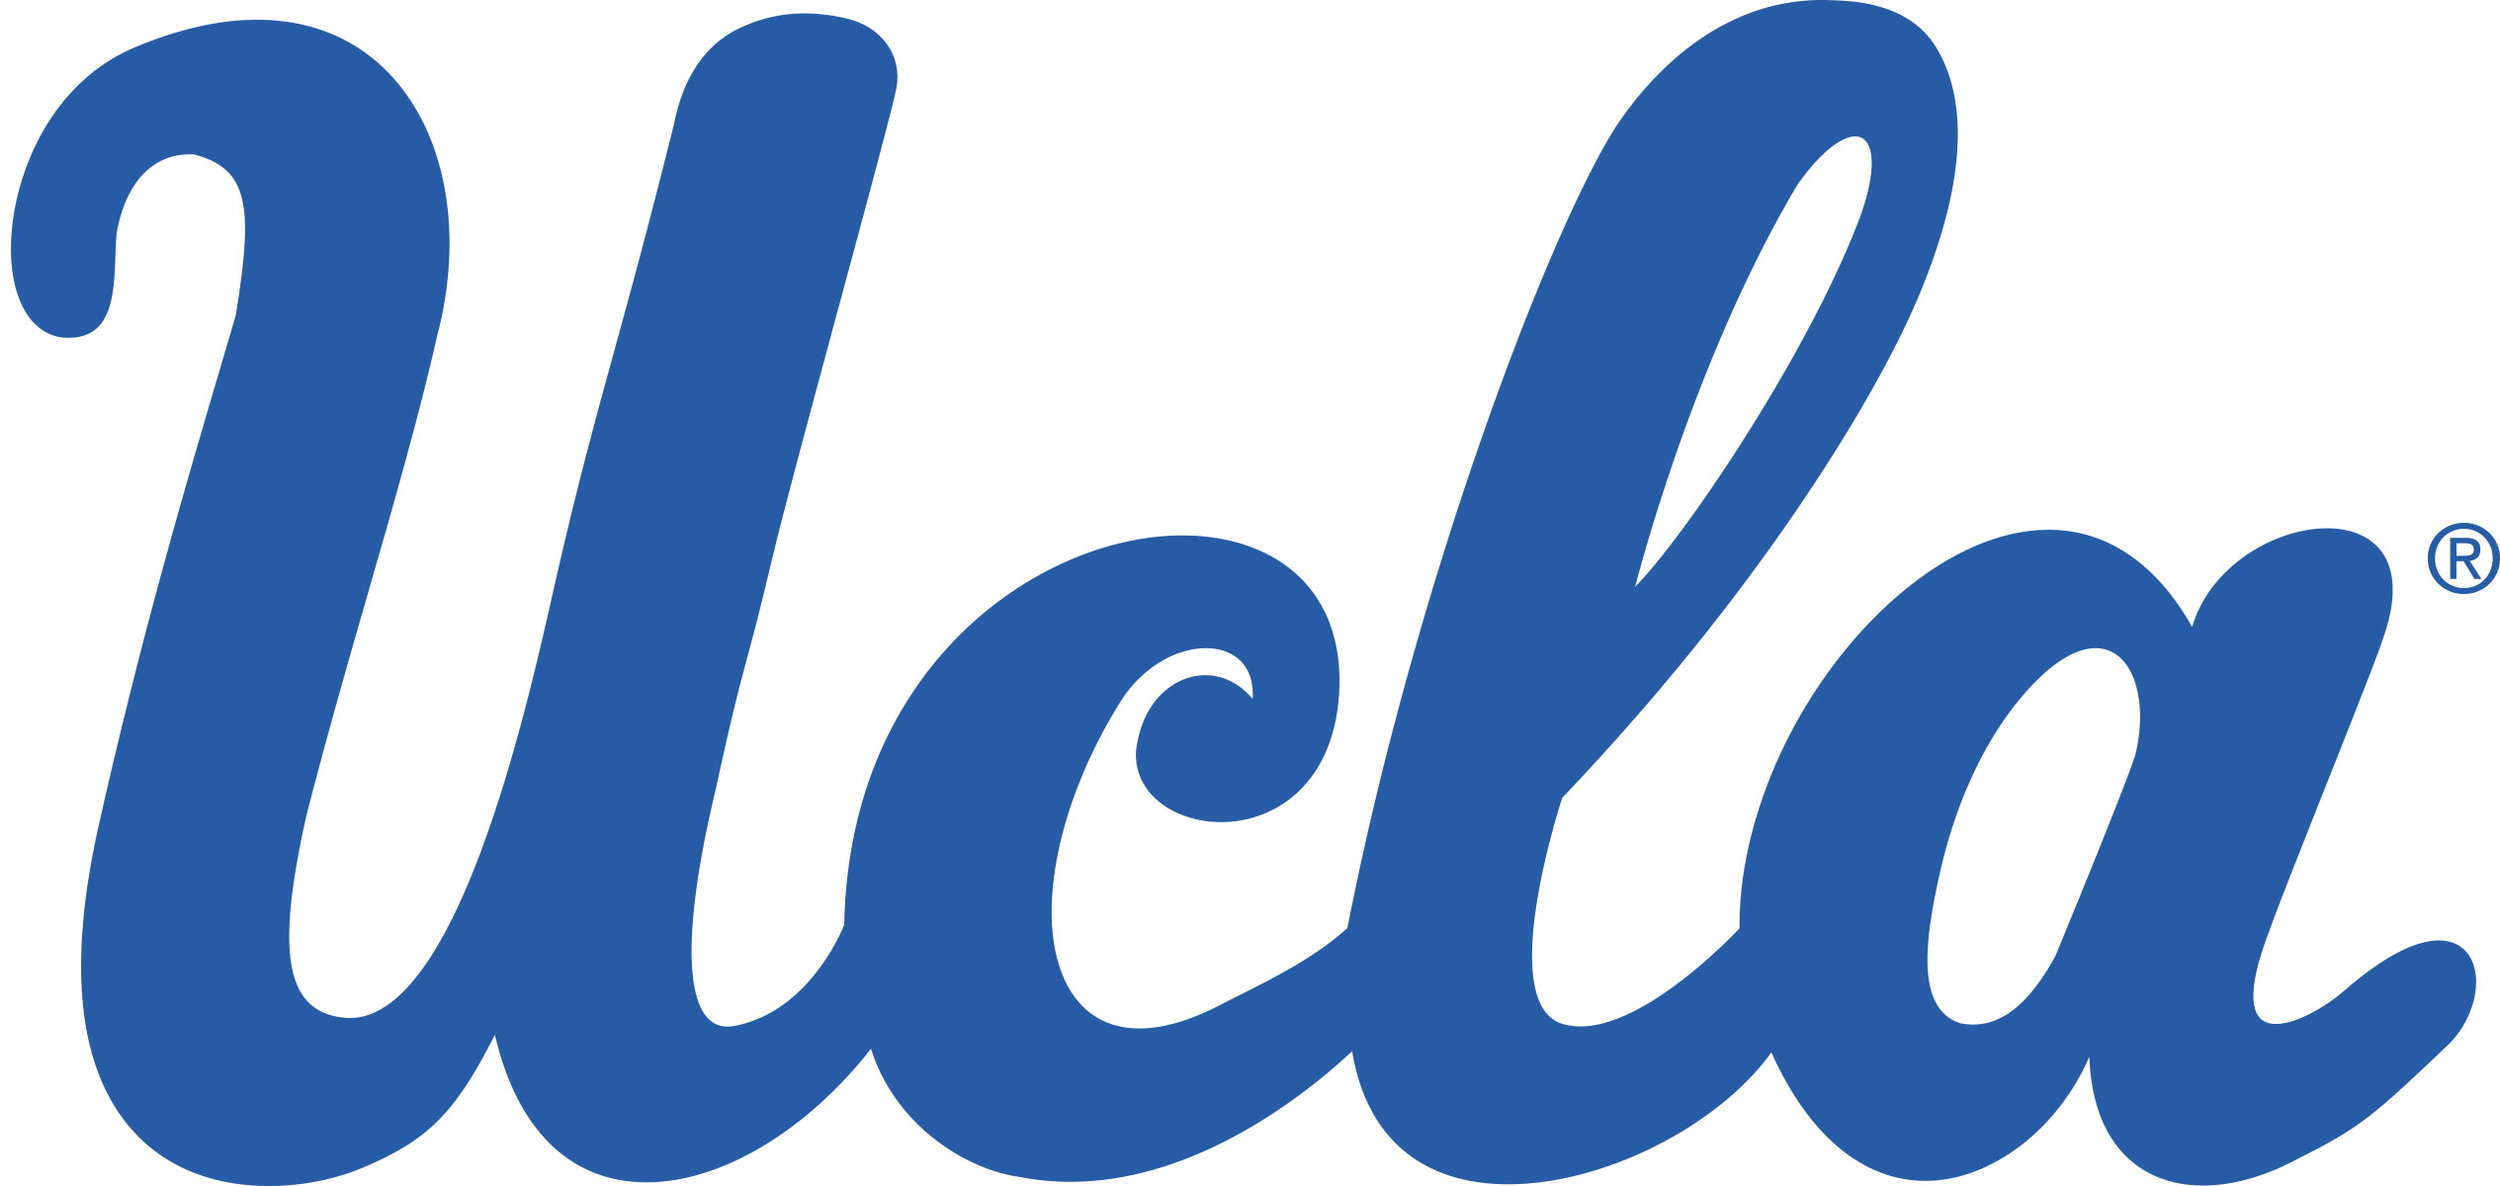 UCLA_WW_PRI_LOGO_ON_WHT.jpg